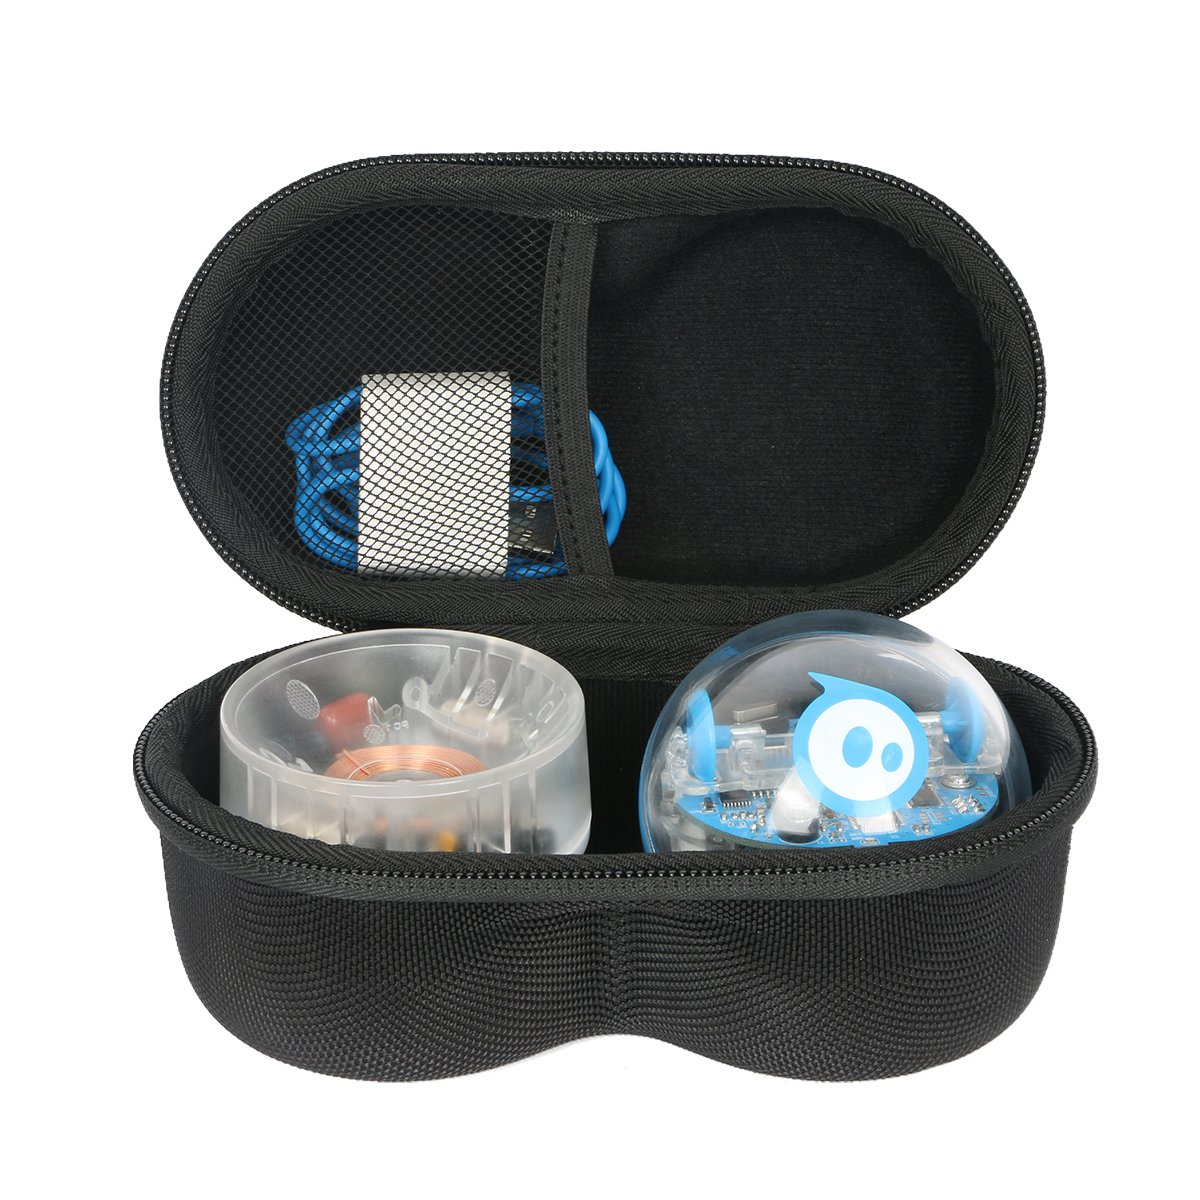 khanka Hard Travel Case for Sphero SPRK+ STEAM Educational Robot / Bolt App-Enabled Robot by khanka (Image #3)